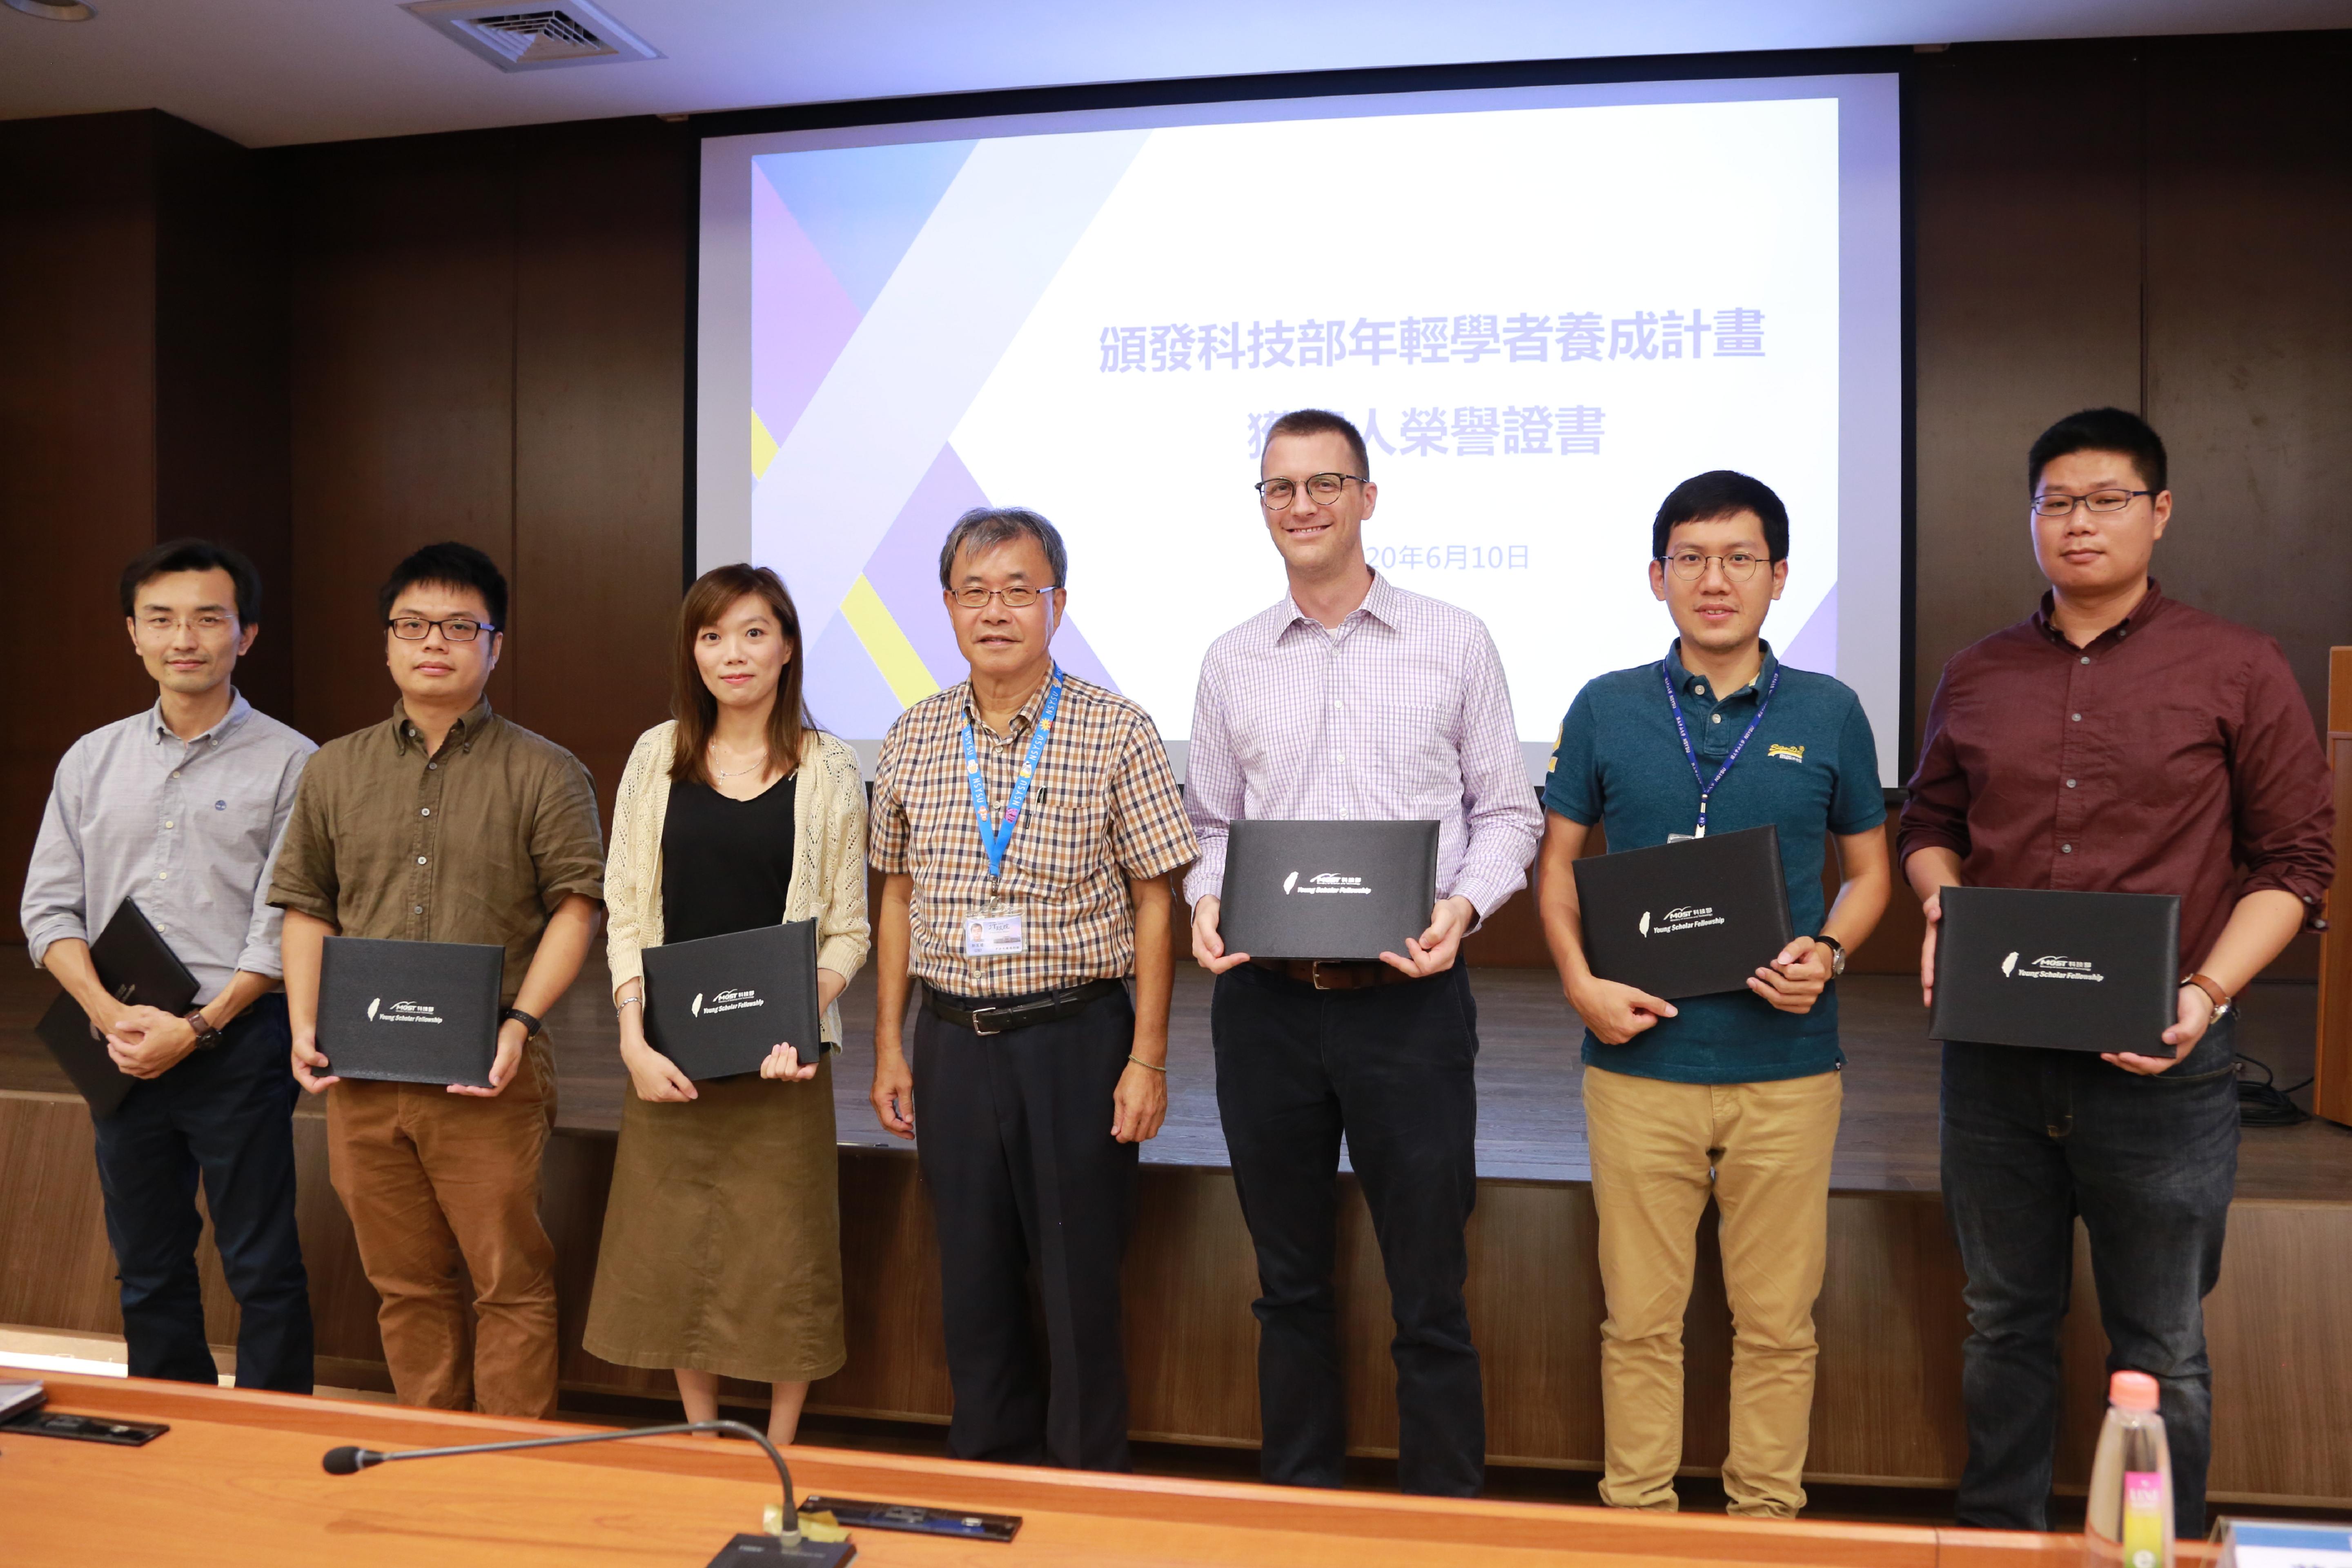 Six young scholars of NSYSU receive the Young Scholar Fellowship of the Ministry of Science and Technology